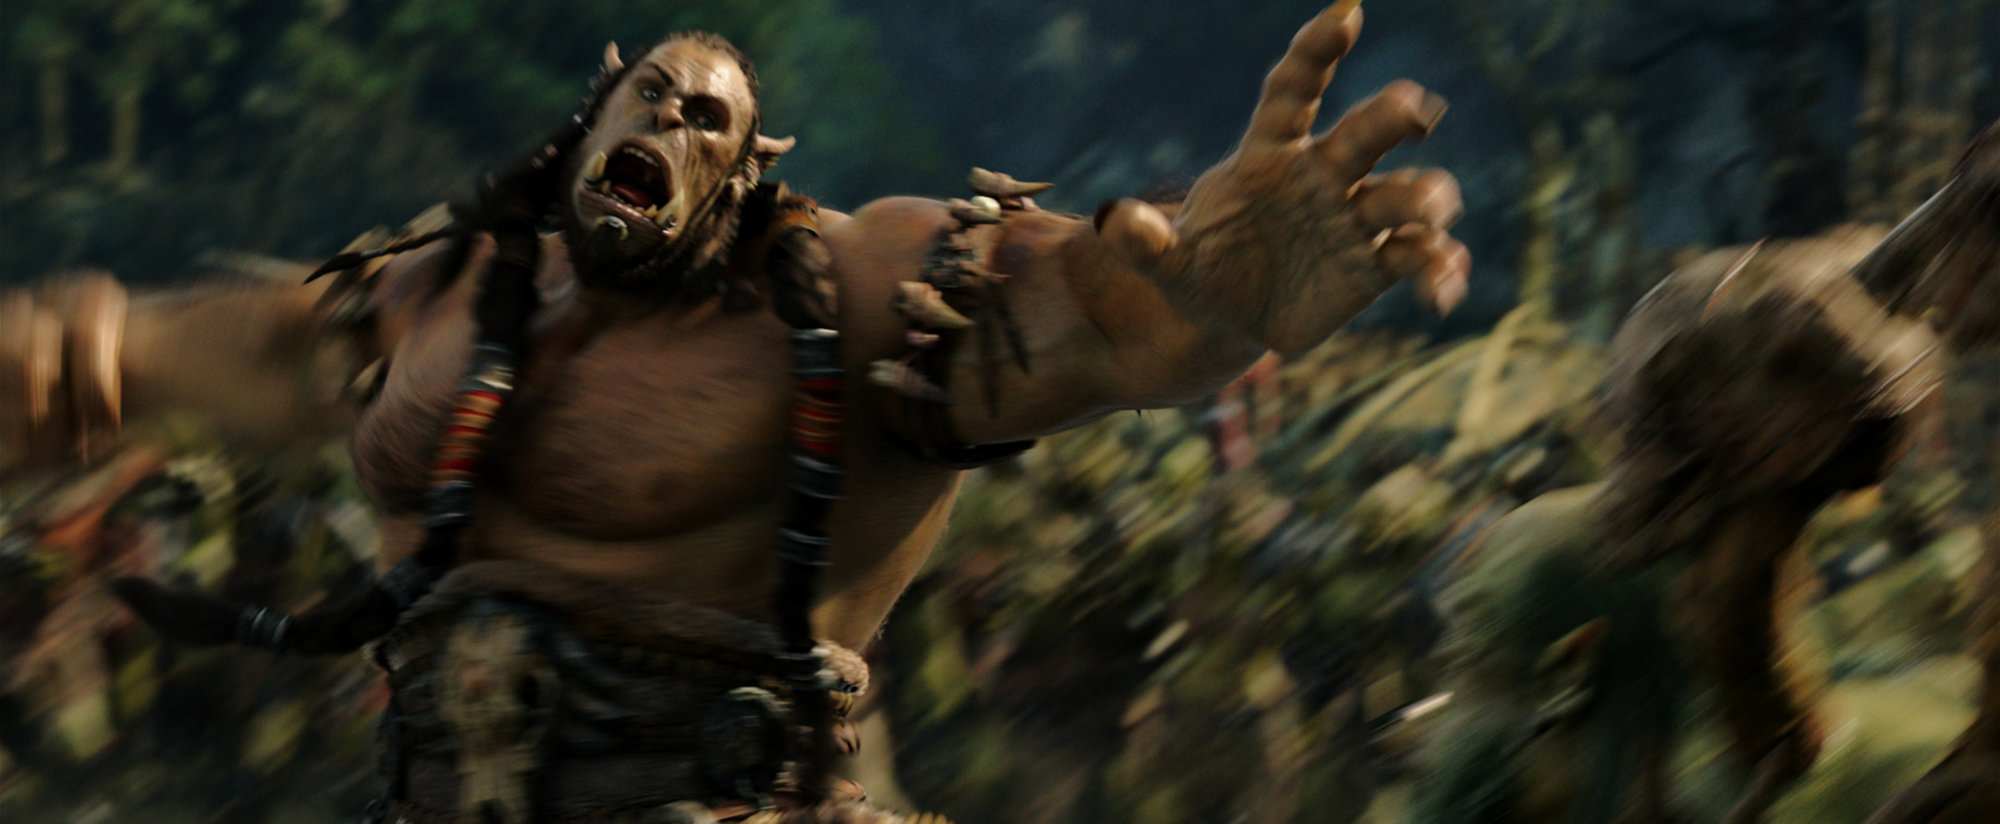 warcraft-review-ing07-20160611